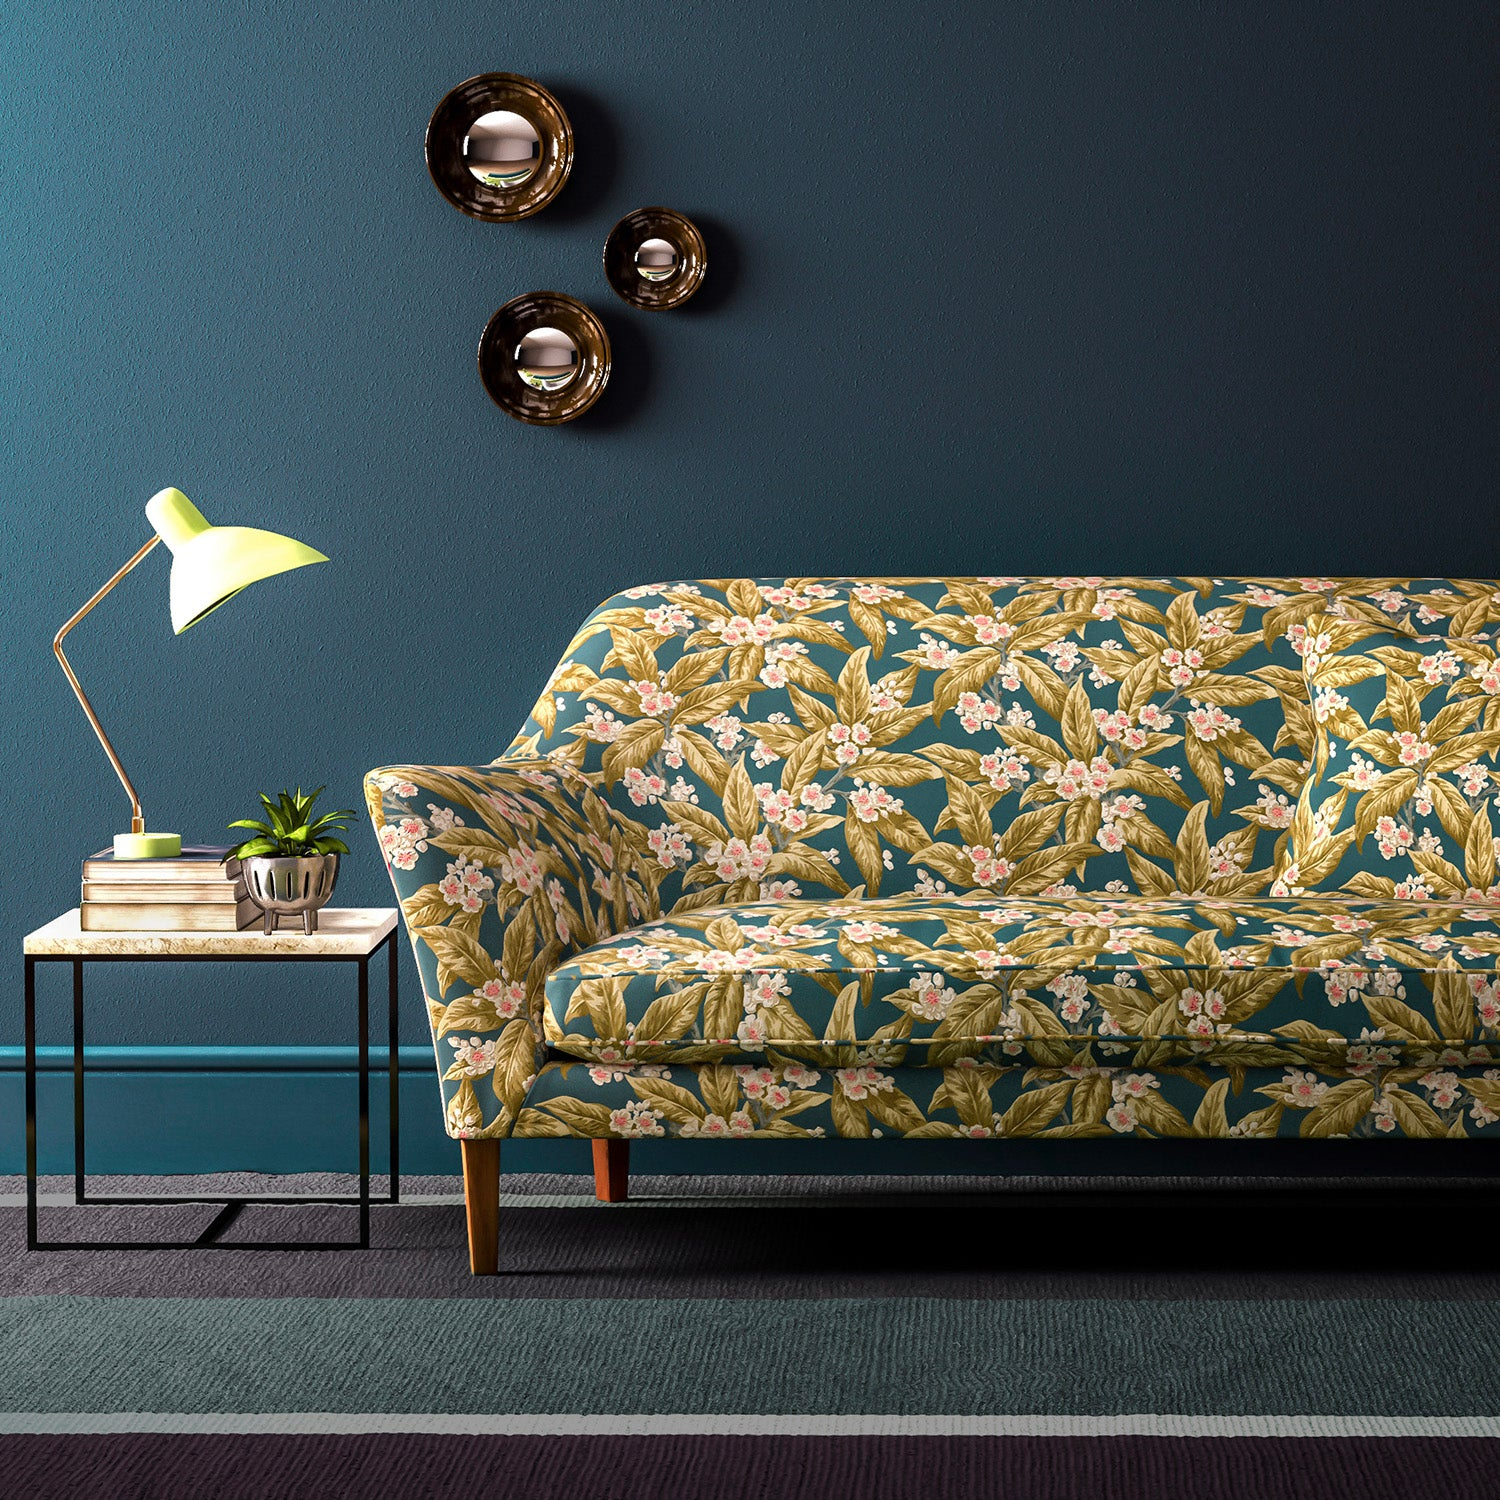 Velvet sofa upholstered in a blue and ochre leaf and blossom velvet upholstery fabric with a stain resistant finish